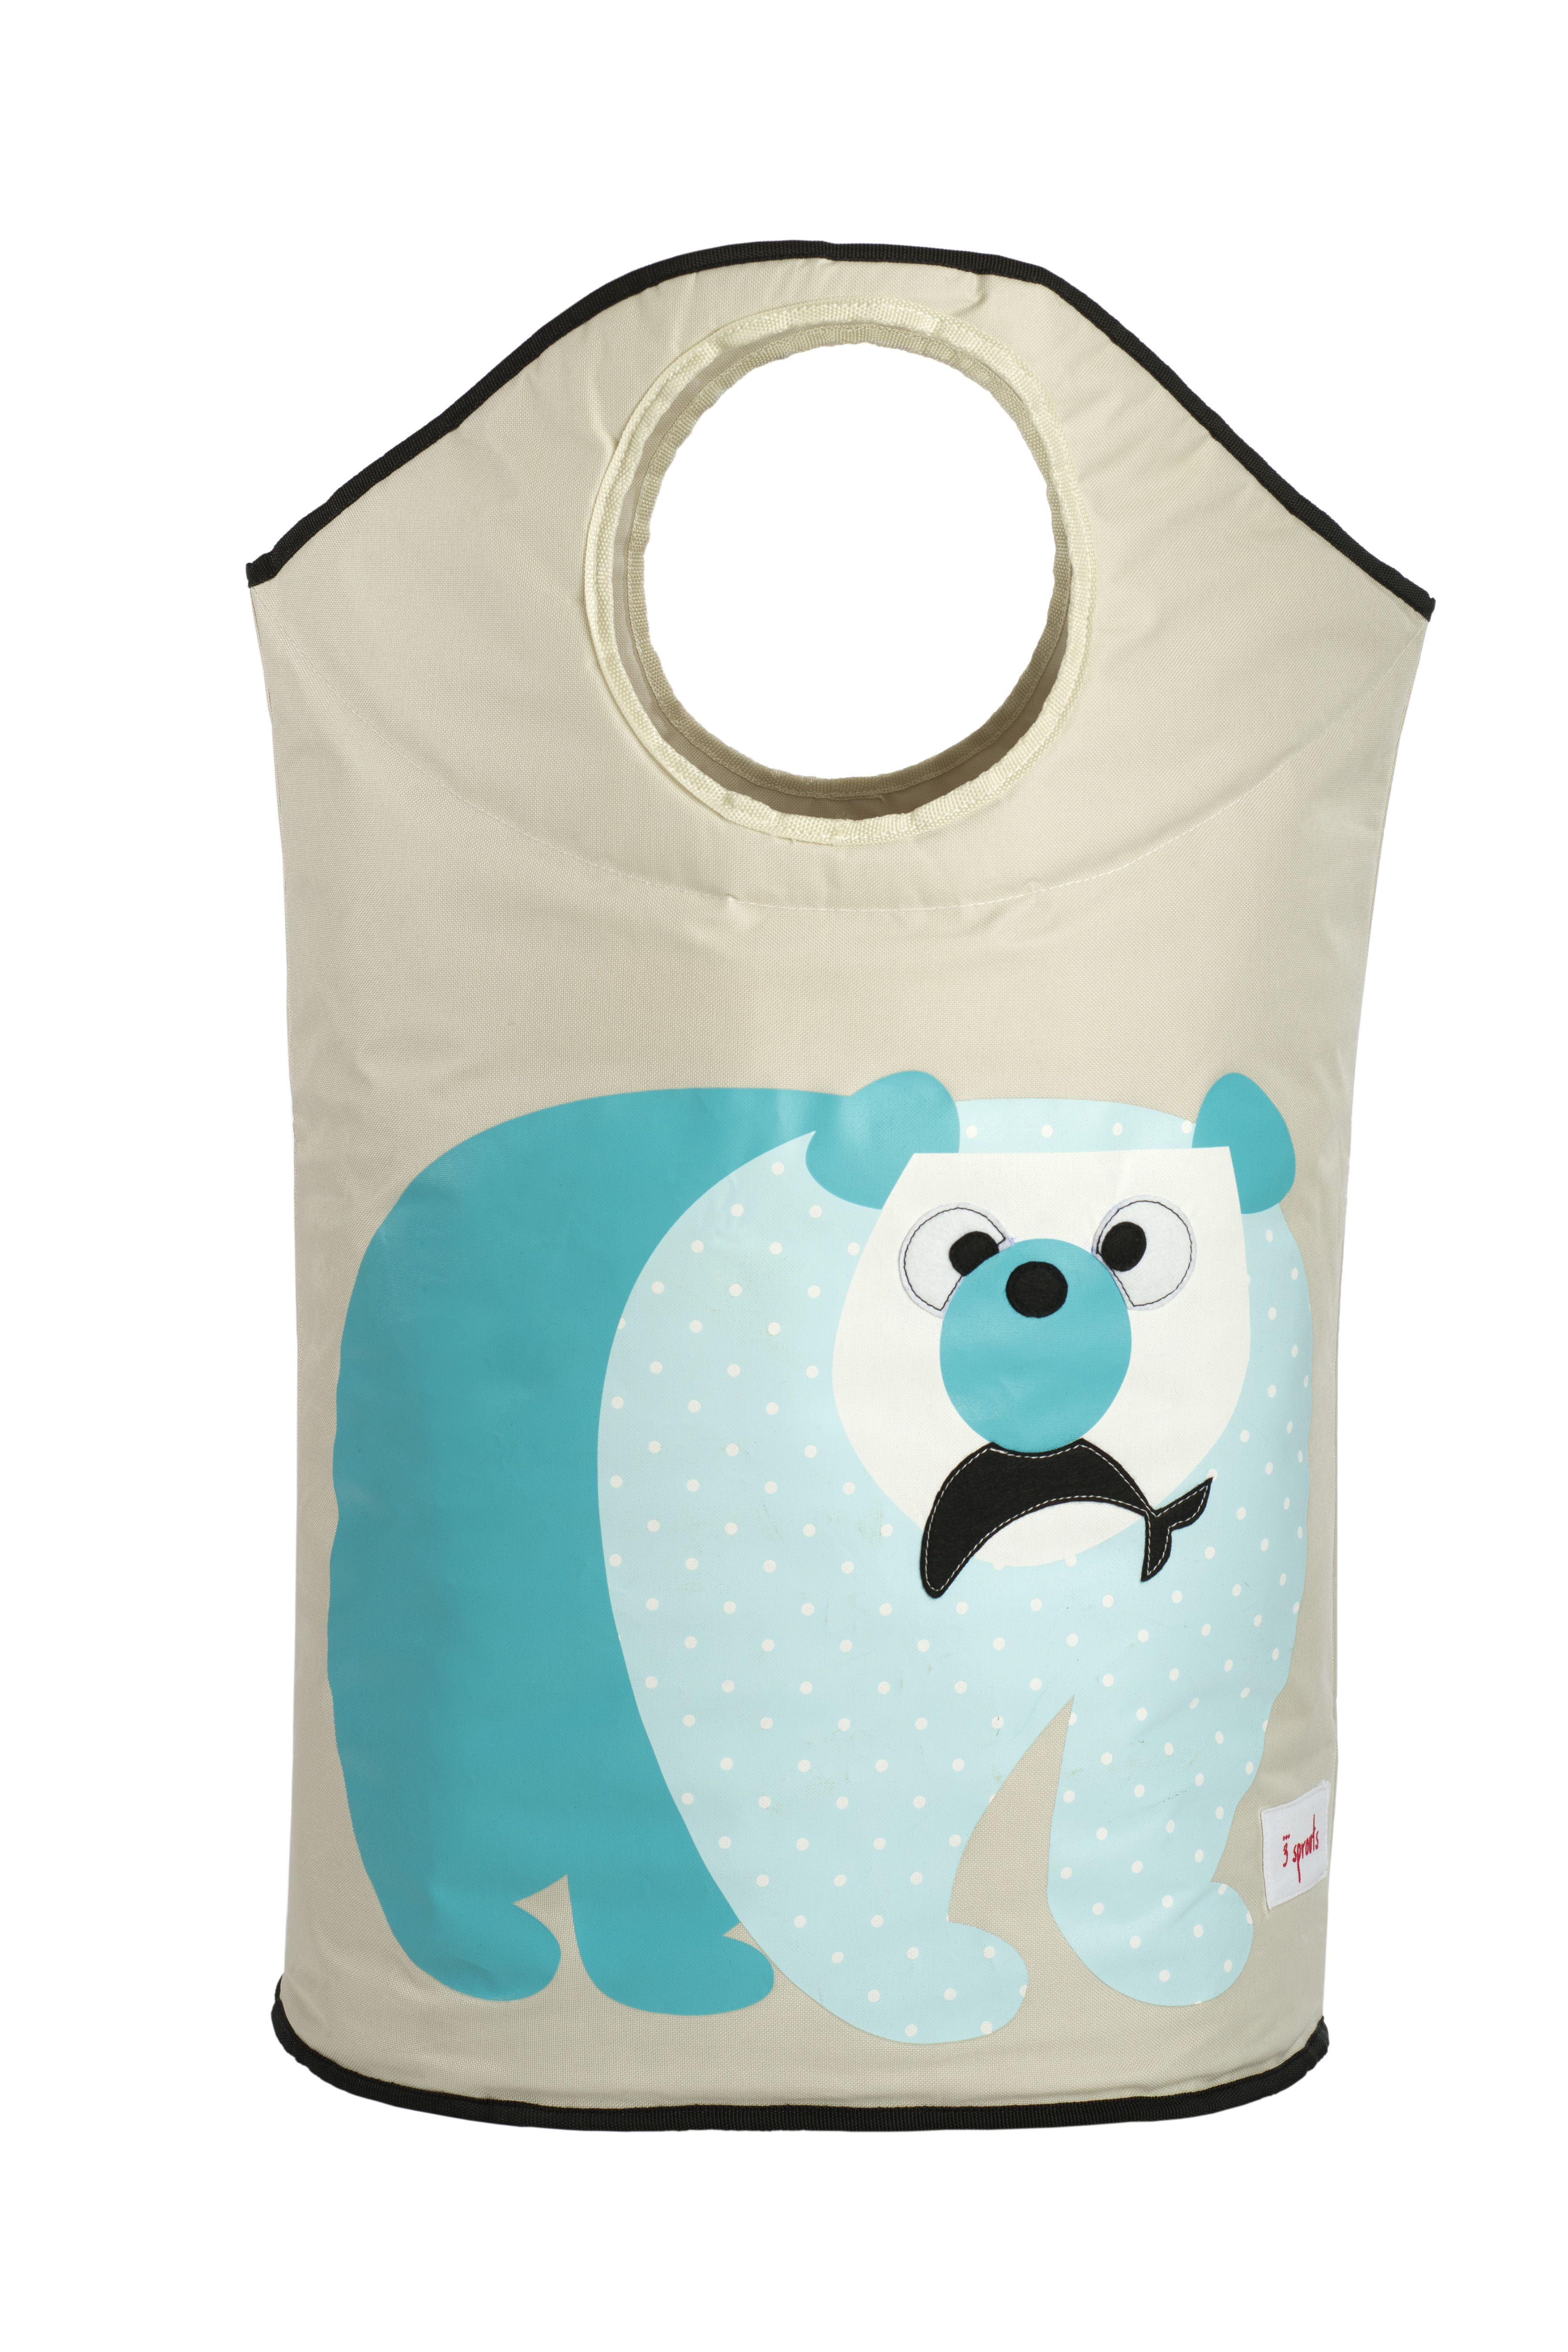 Корзина для белья 3 Sprouts Blue Polar Bear 3 sprouts корзина для белья 3 sprouts осьминог